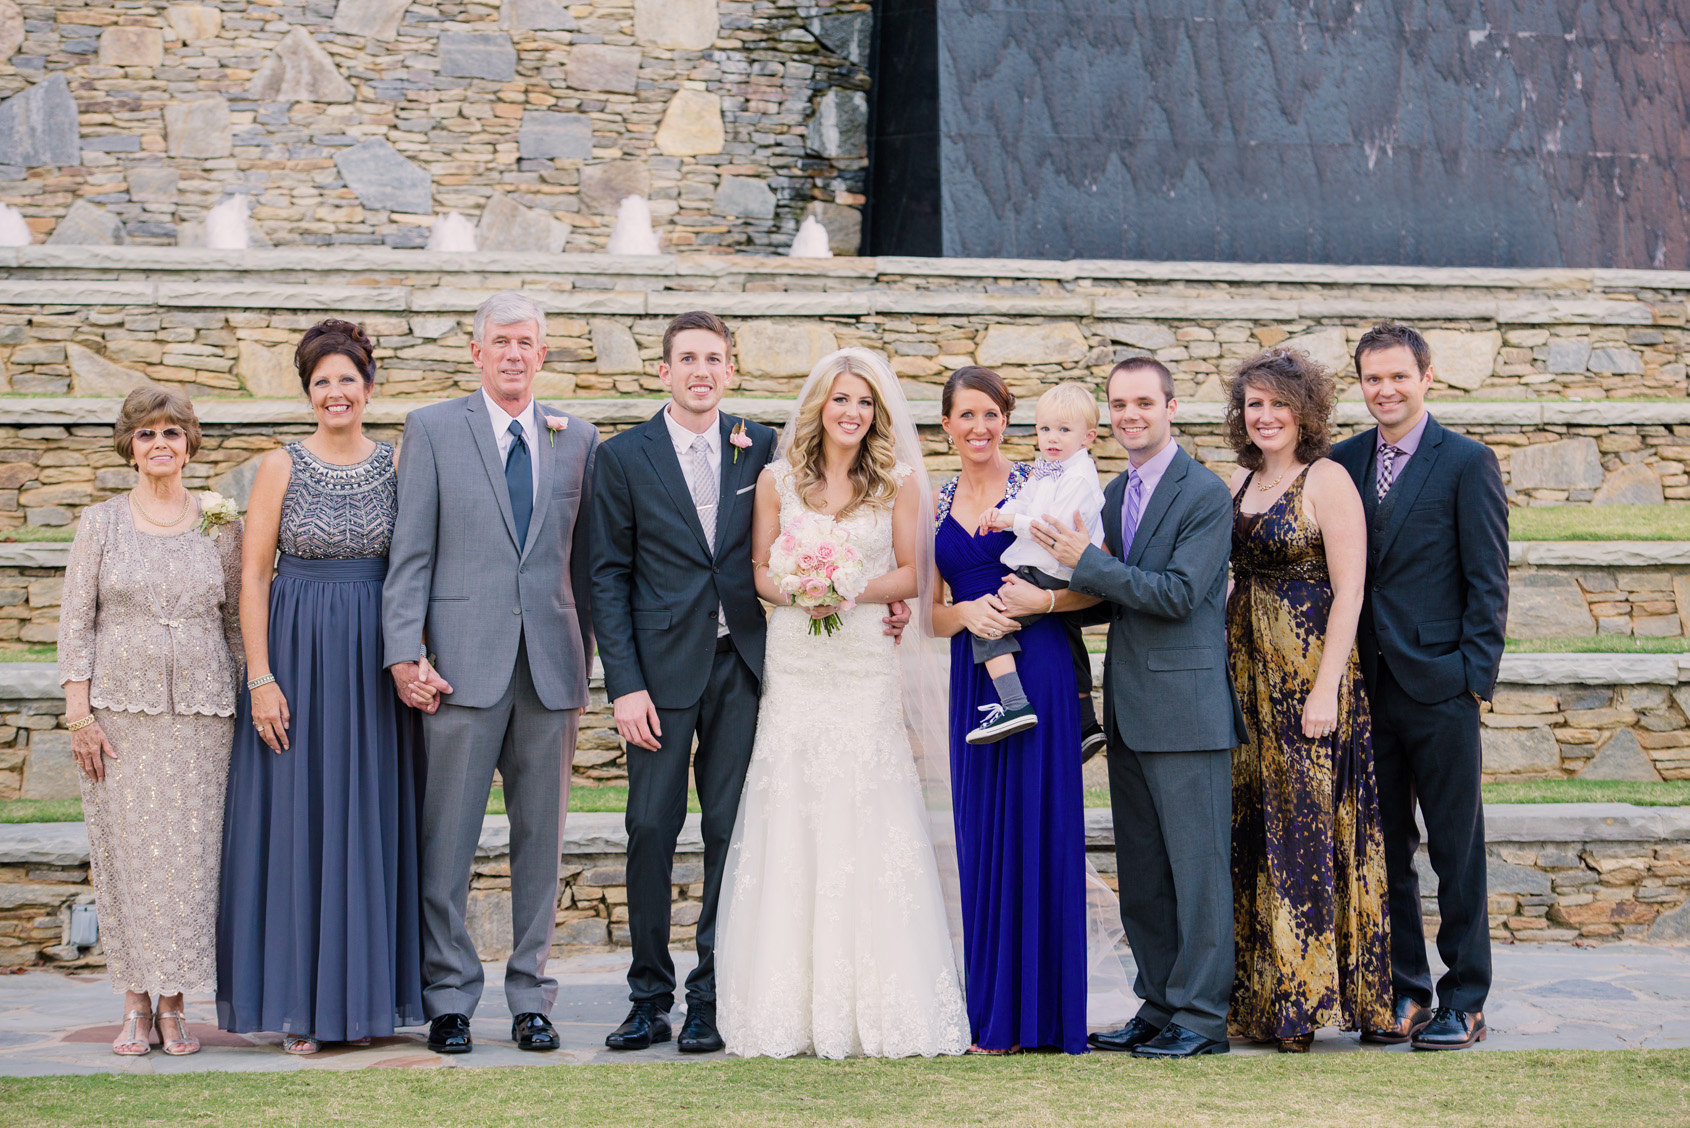 Family Formals Shot List For Weddings And Advice